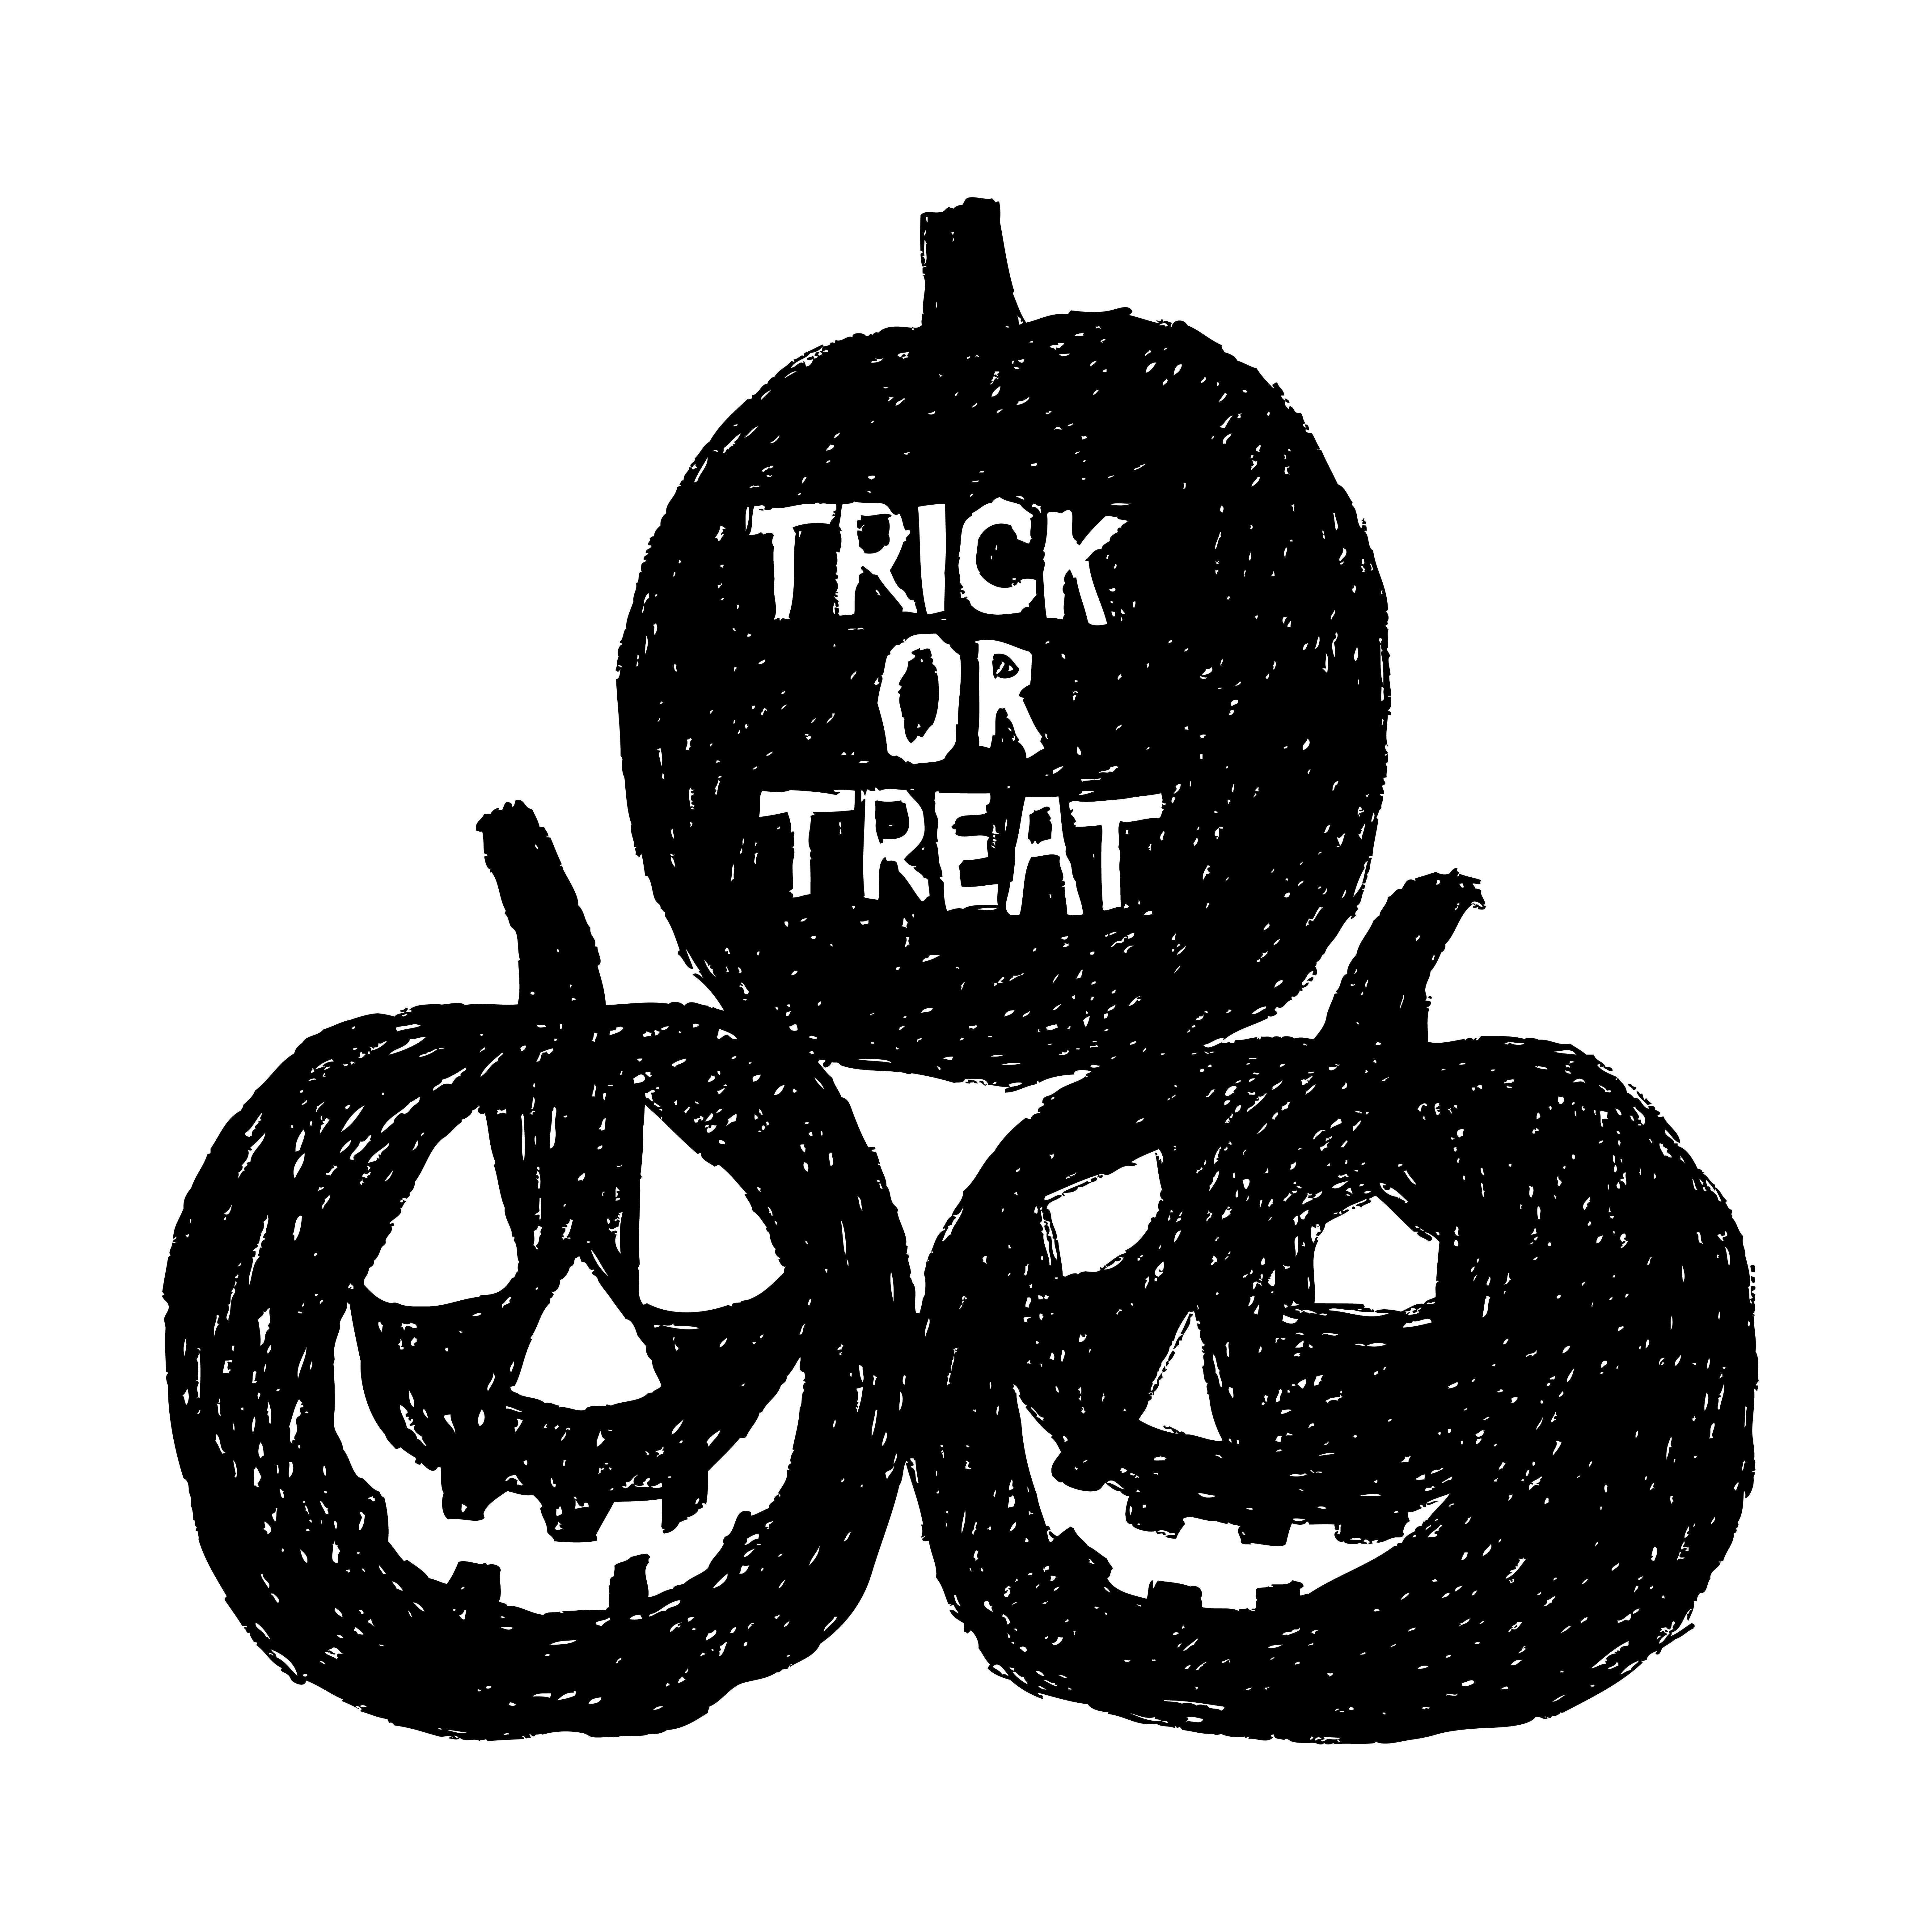 Meaningful_Use_Criteria_for_Optometrists_trick_or_treat